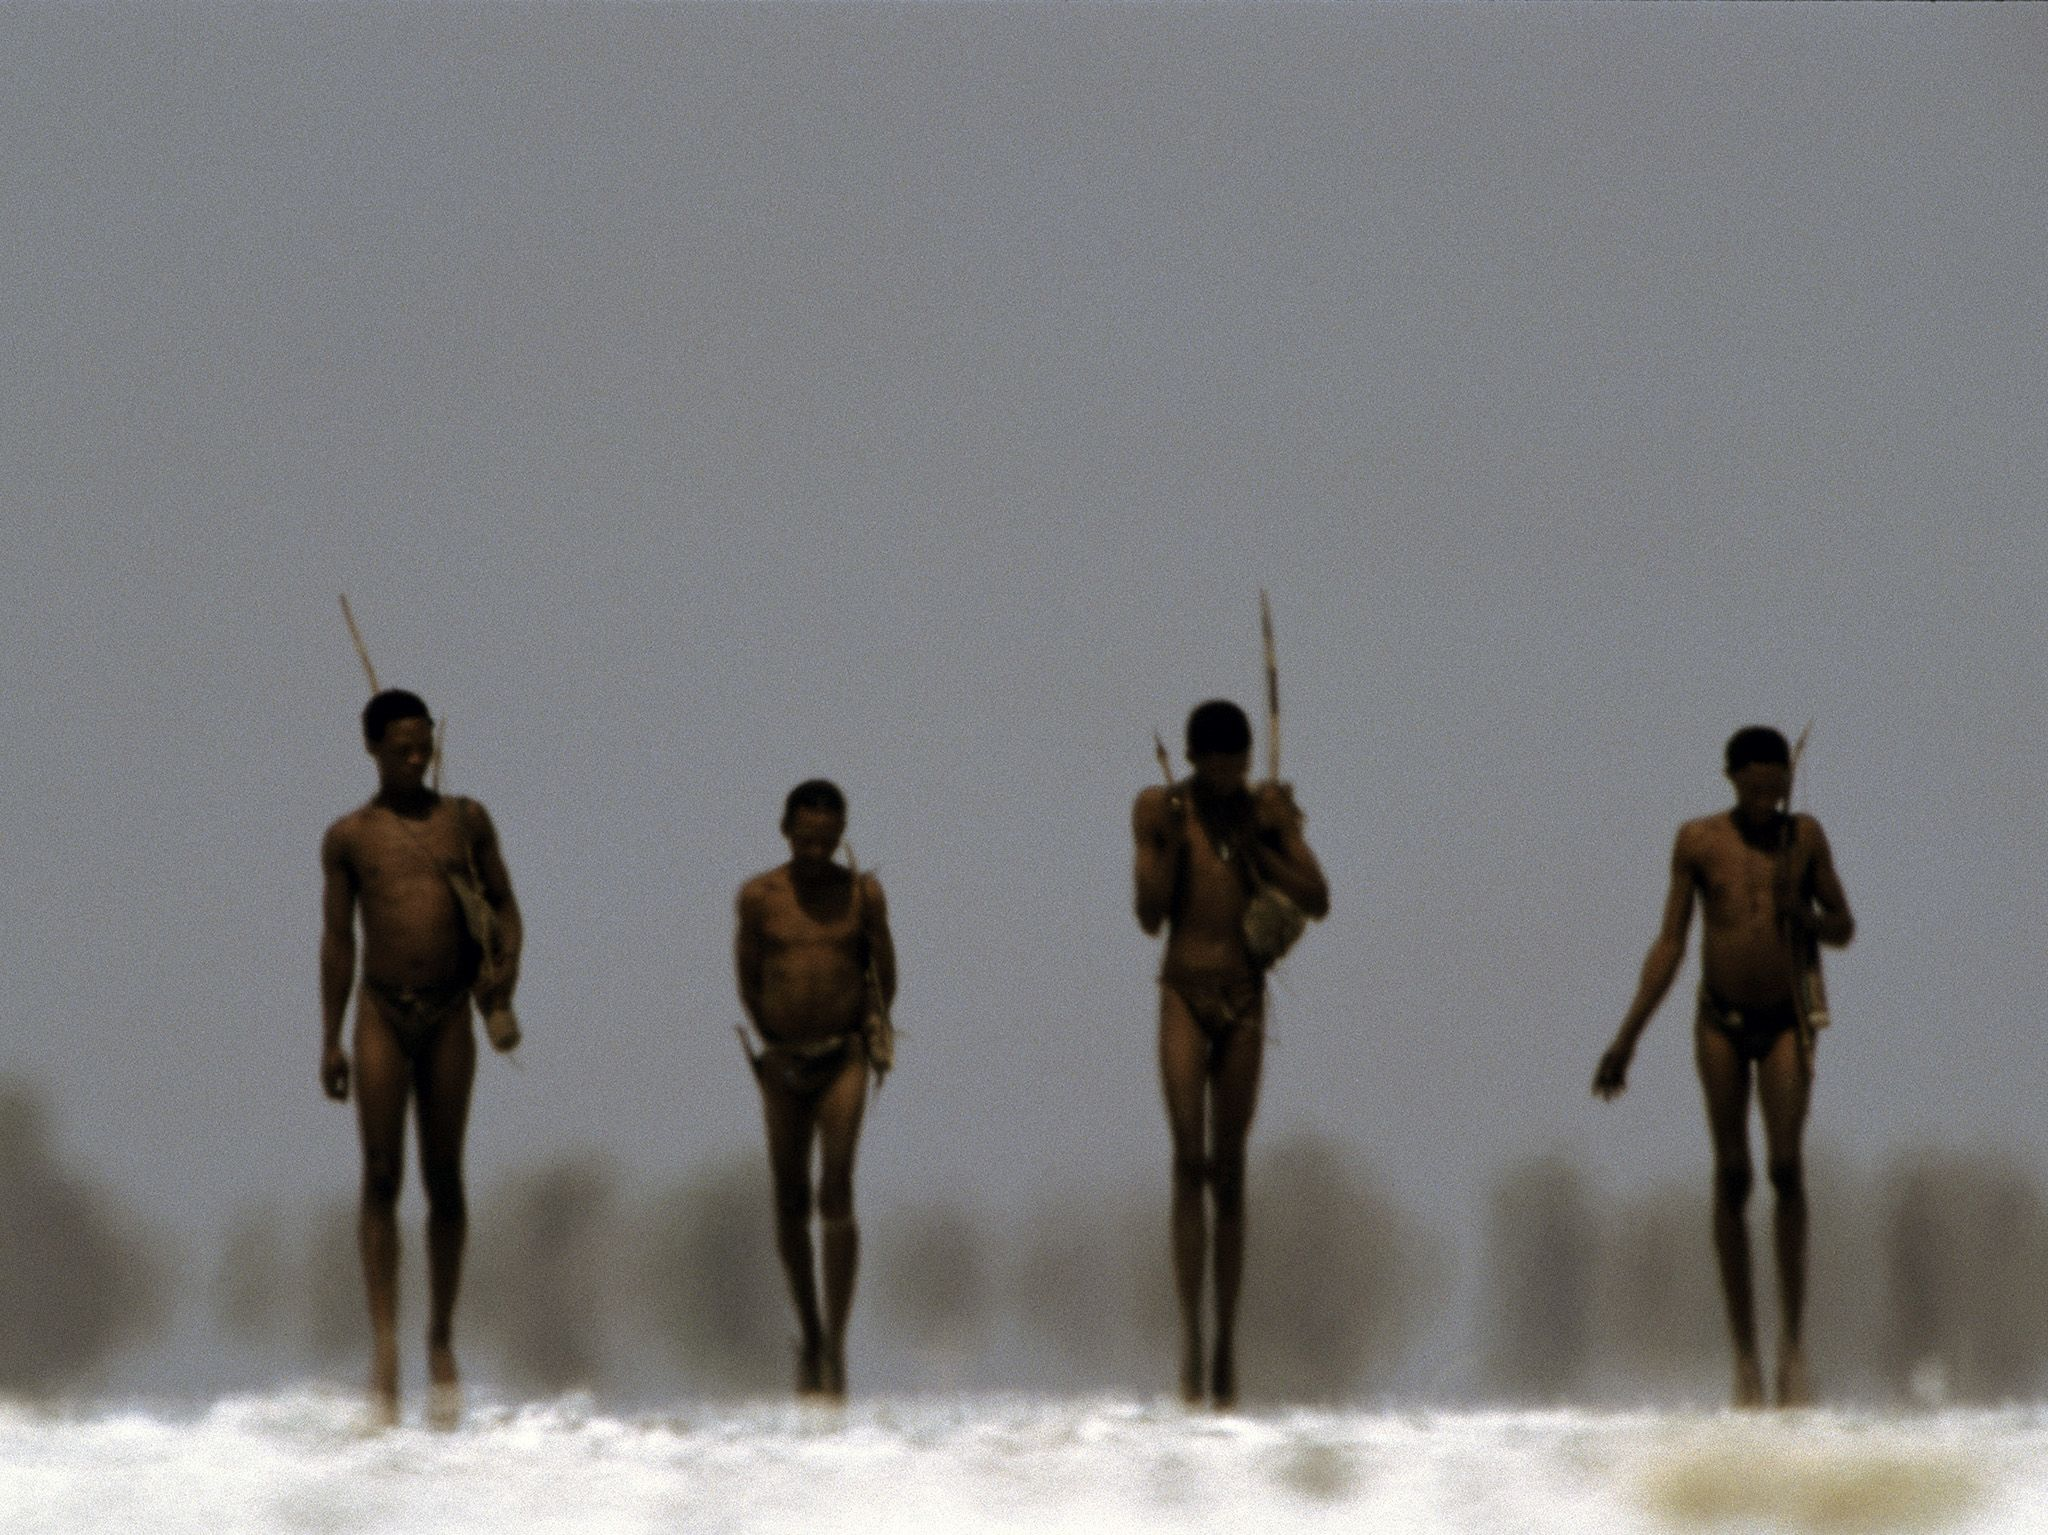 Bushmen armed with bows and arrows walk across a salt pan in Nyae Nyae Conservancy, Namibia.... [Photo of the day - March 2020]